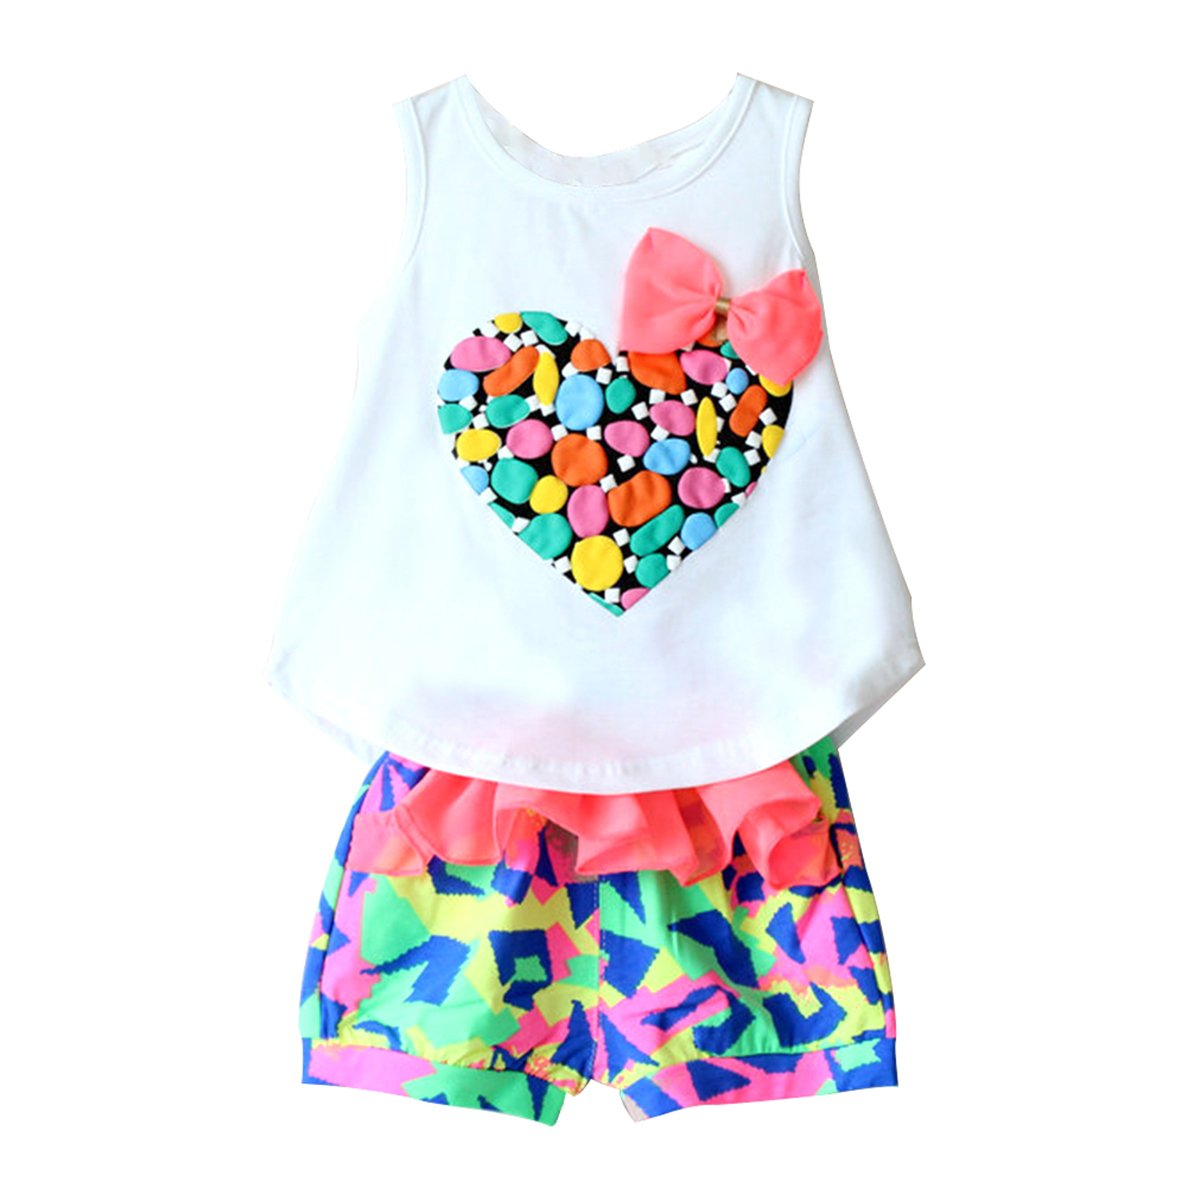 2pcs Kids Baby Girls Summer Clothes Love Heart Vest Top + Colorful Shorts Outfit